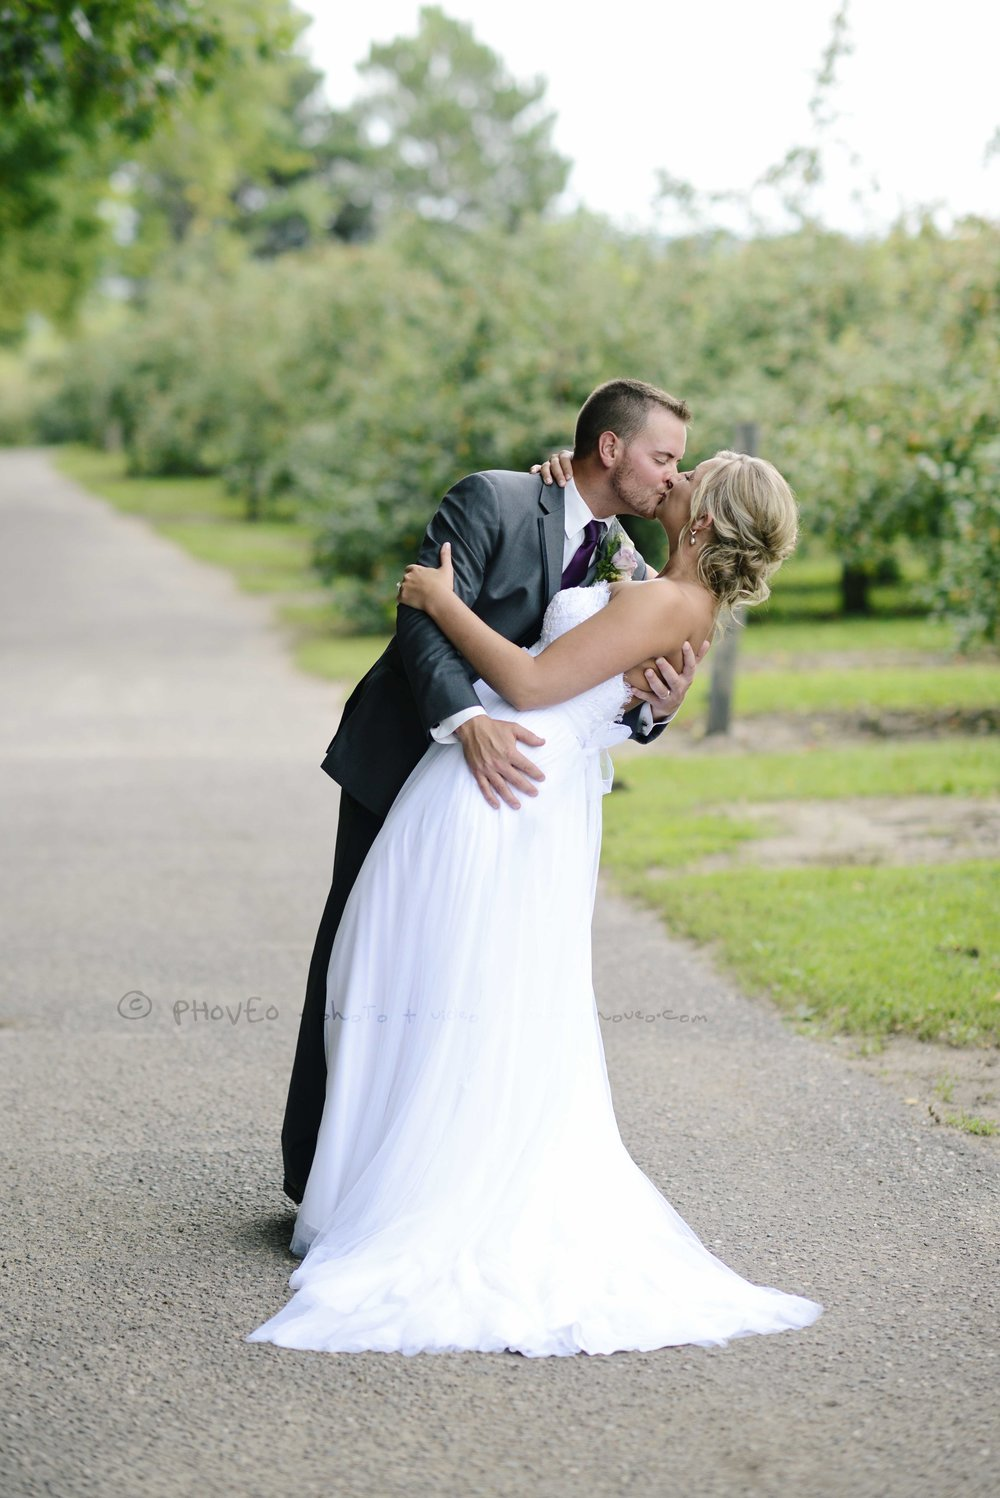 WM_20160826_Katelyn+Tony_62.jpg